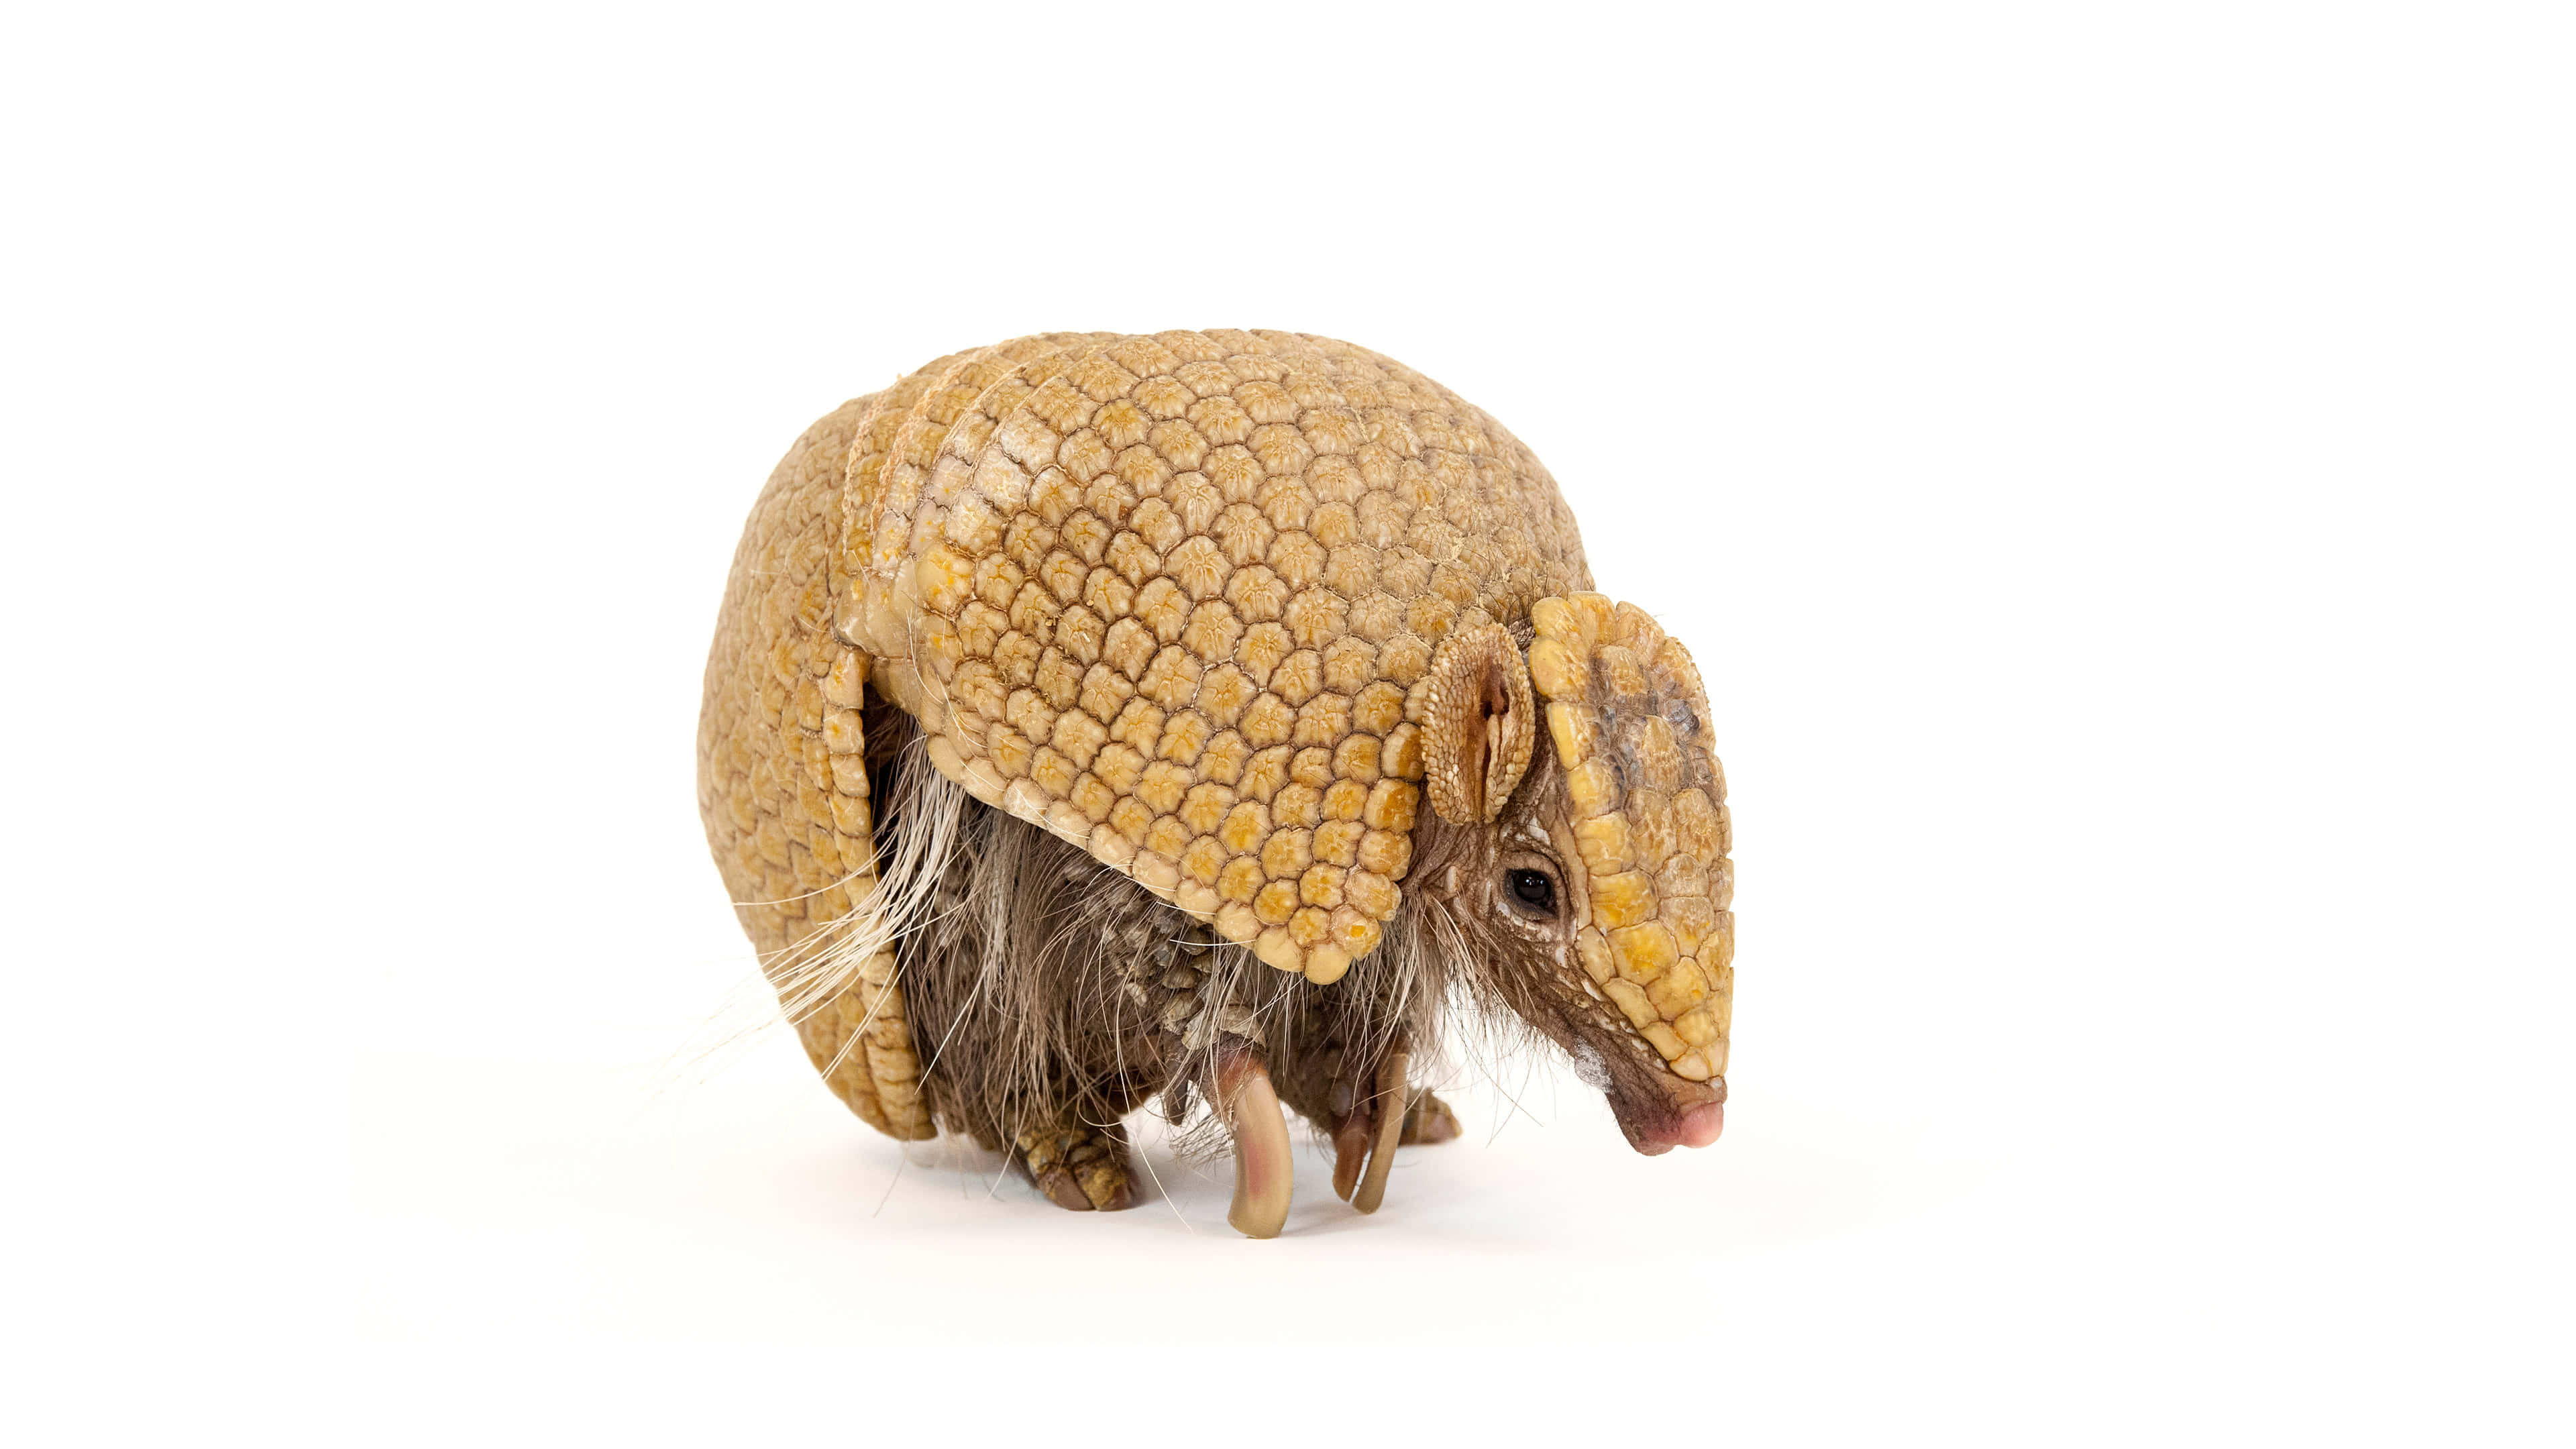 southern three banded armadillo uhd 4k wallpaper